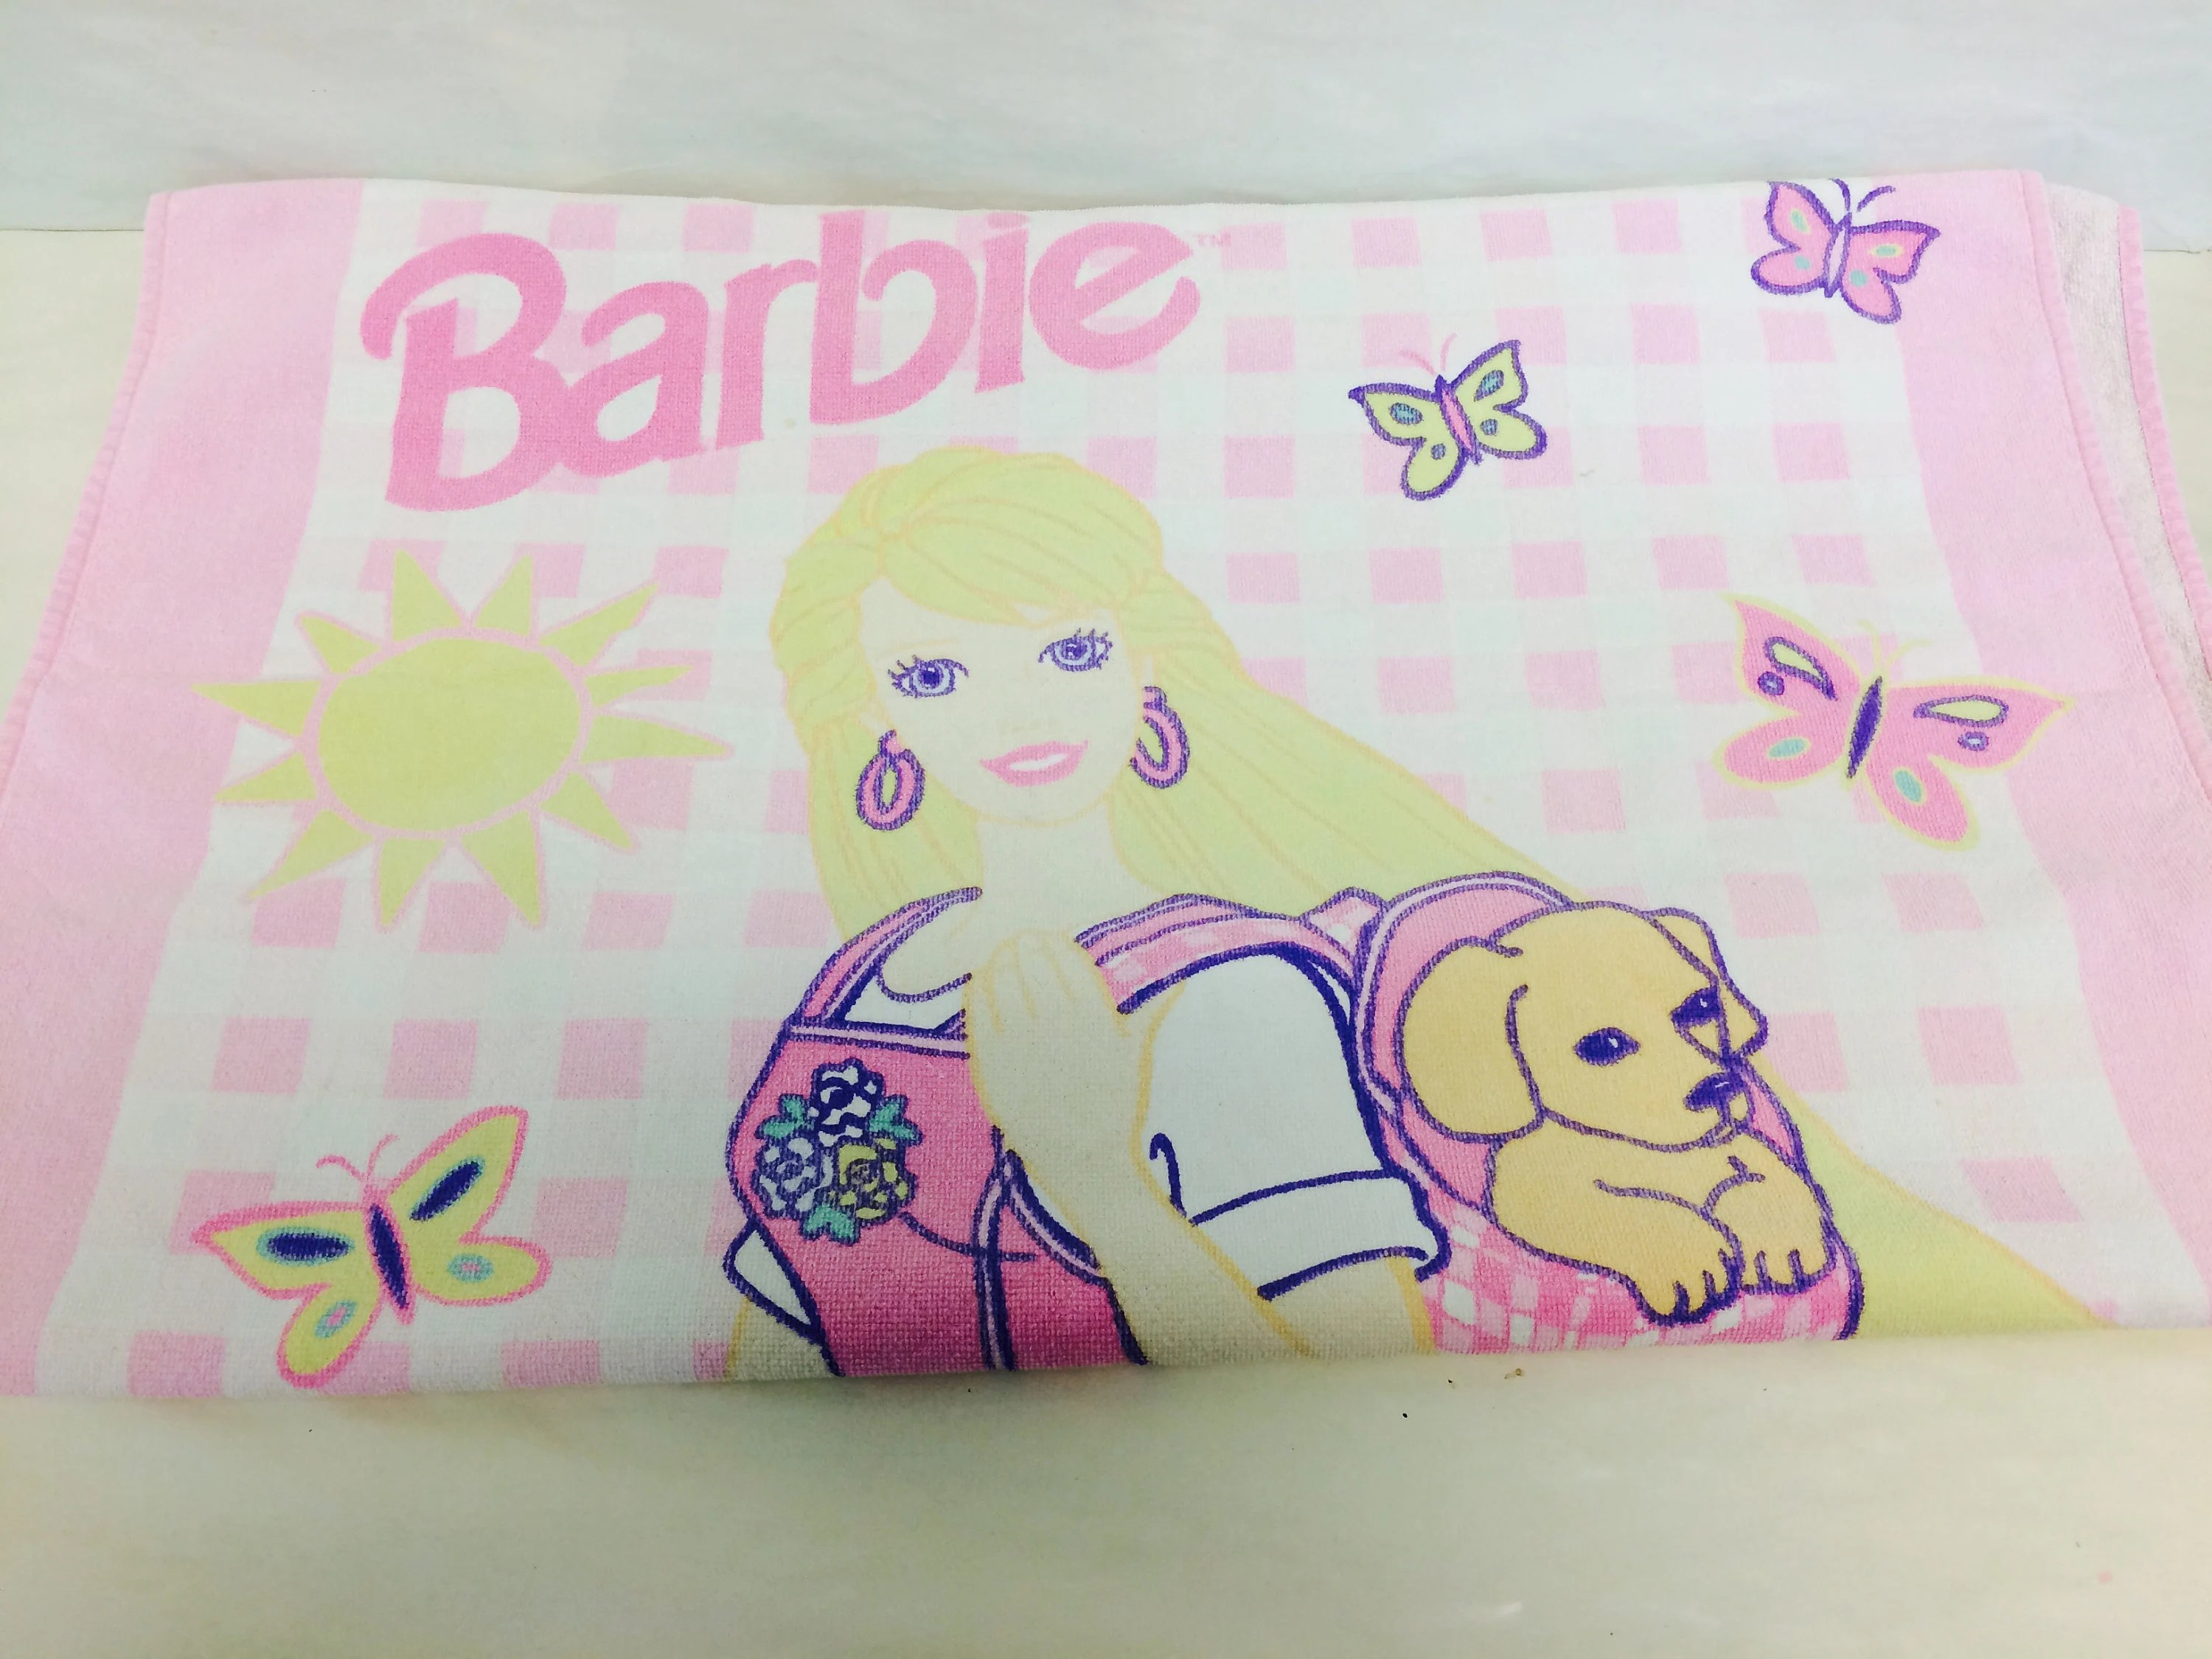 Barbie Badezimmer Vintage Barbie Towel Barbie And Her Puppy Dog 1990s Mattel Bath Towel Beach Towel 1996 Barbie Doll Barbie Collector 1990s Girl Toys